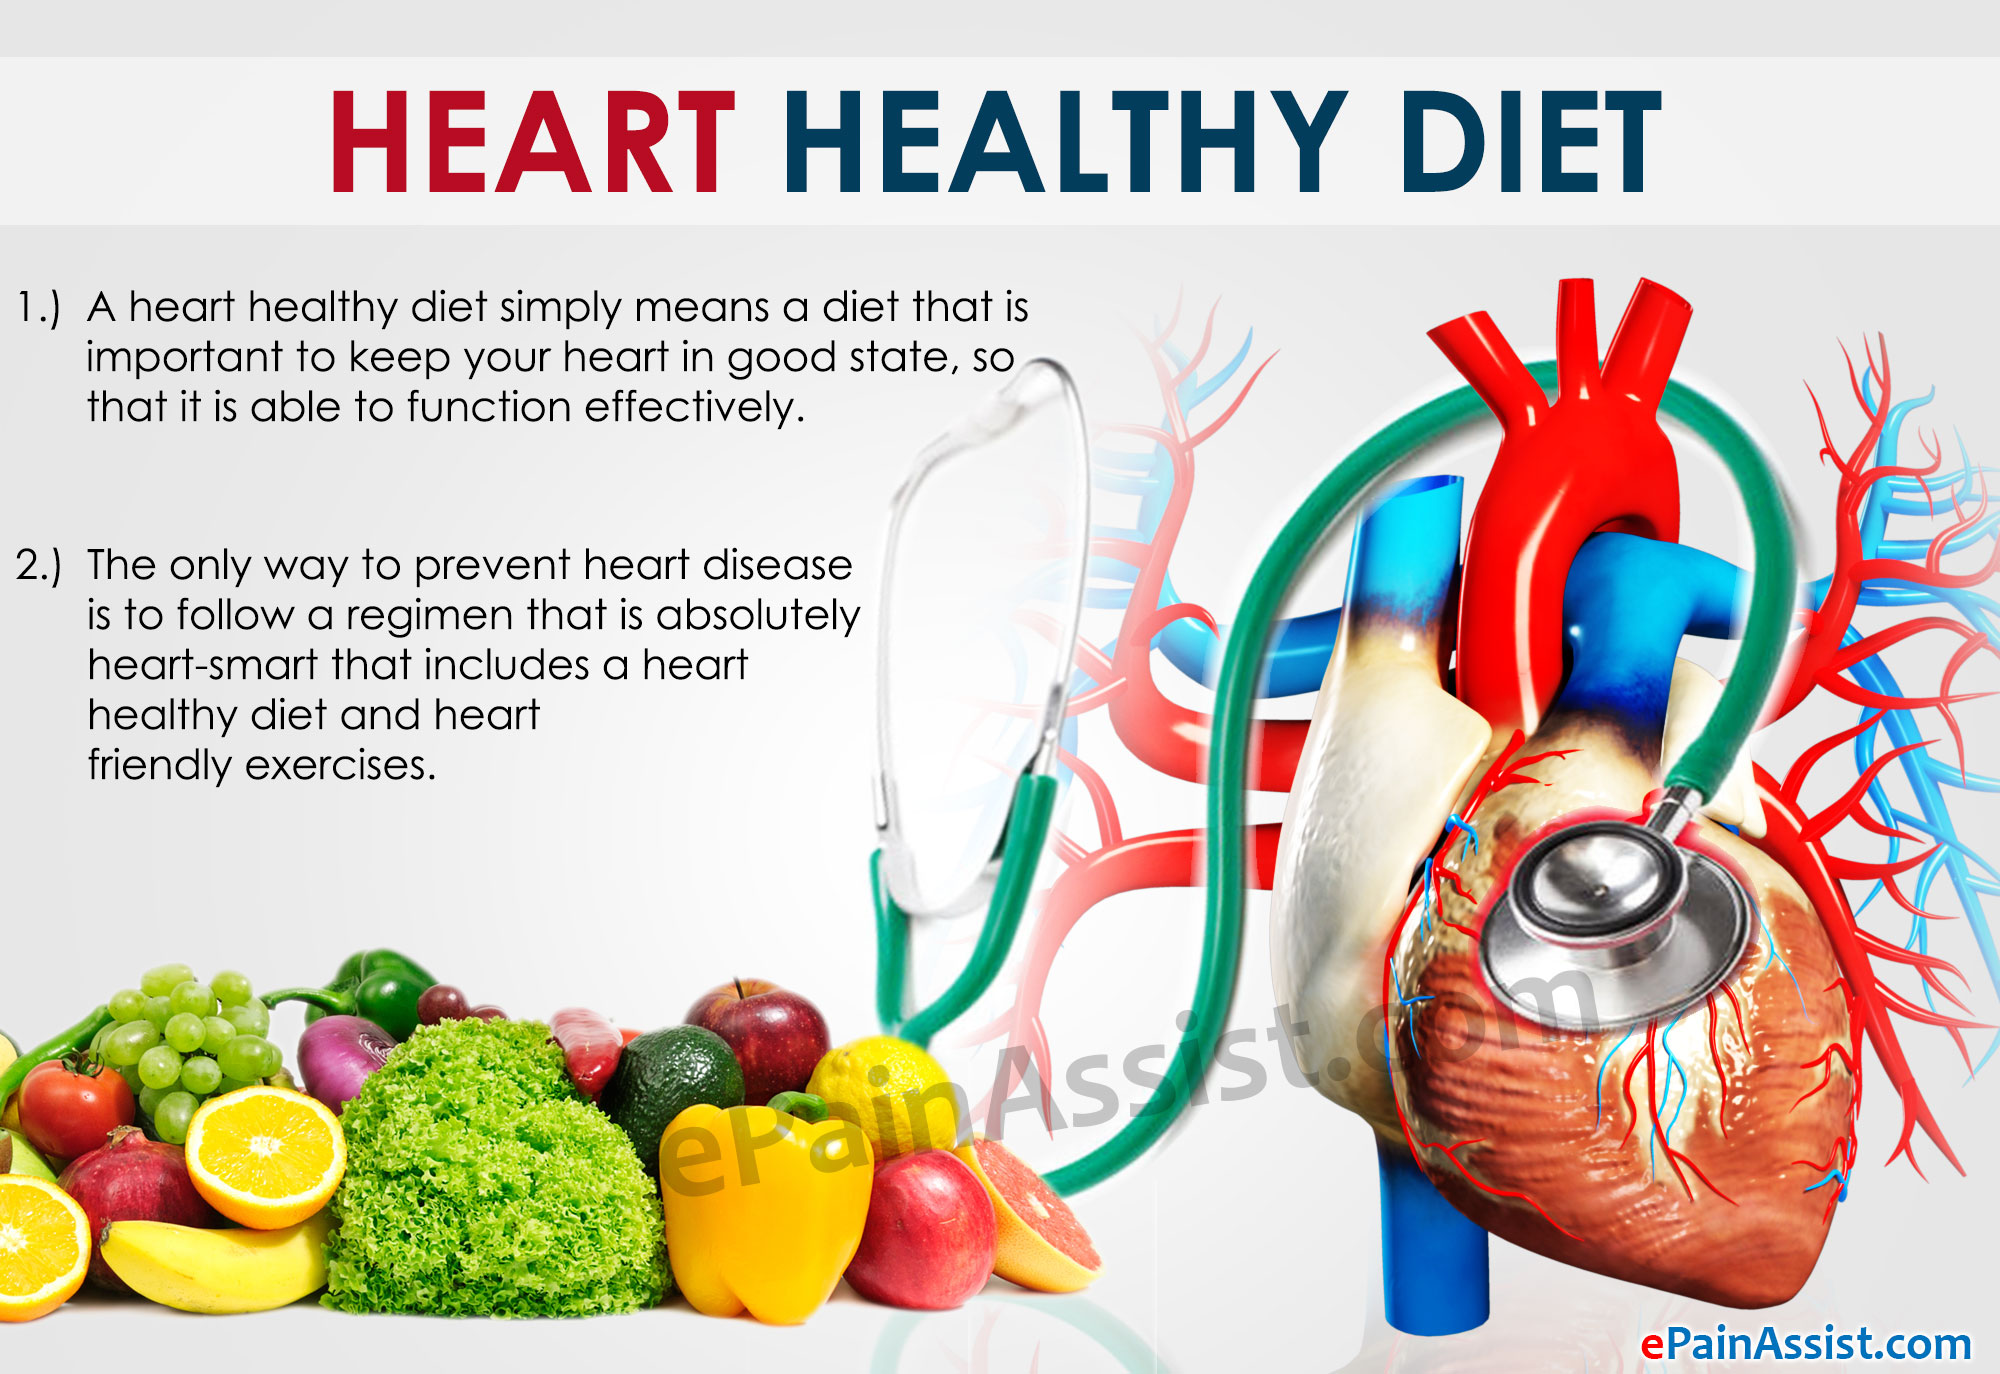 Heart healthydietfoodcookingtips heart healthy diet food cooking tips forumfinder